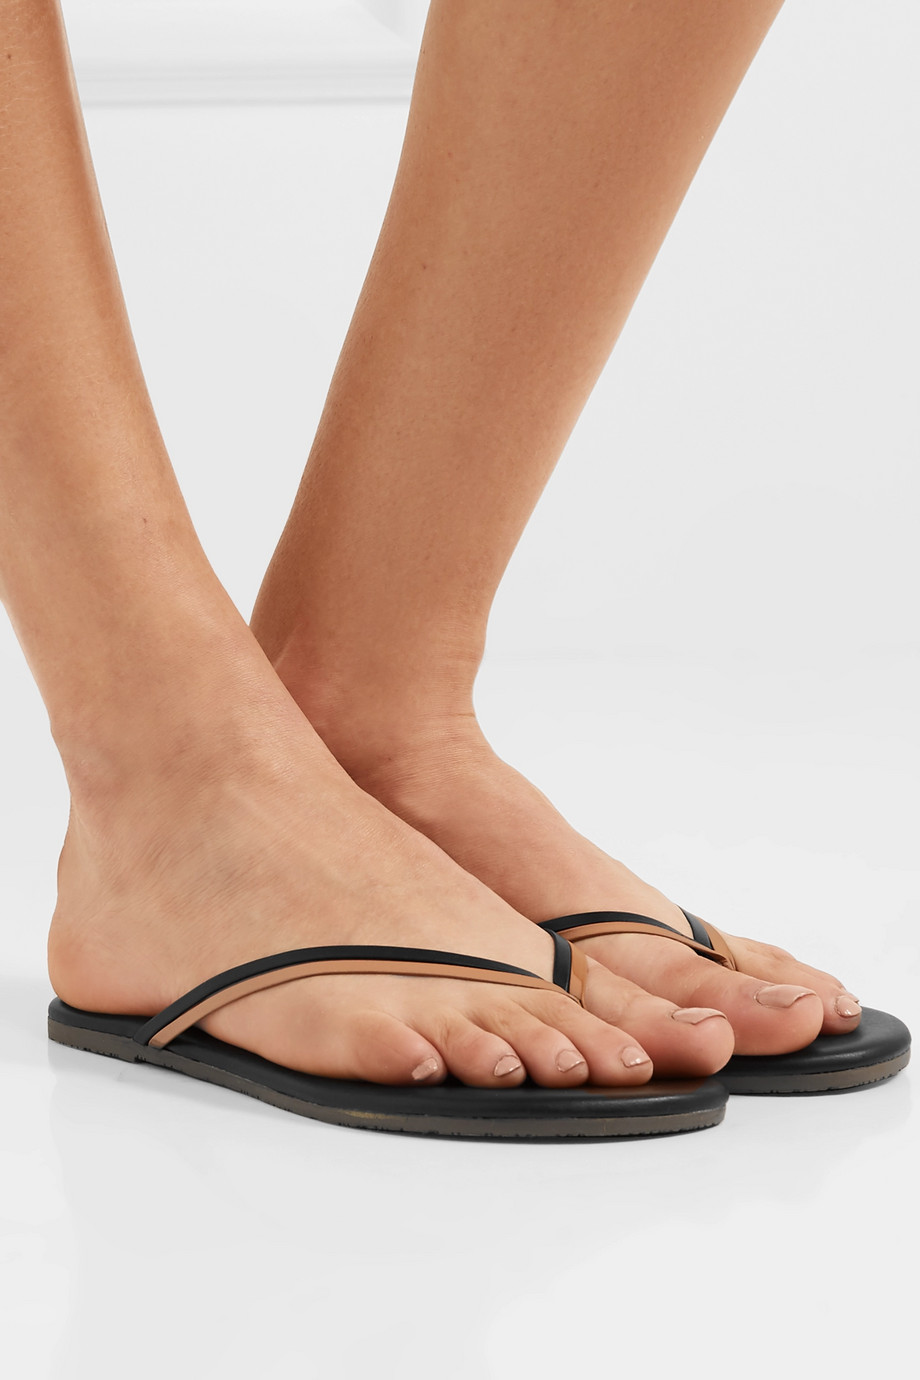 TKEES Duos two-tone leather flip flops